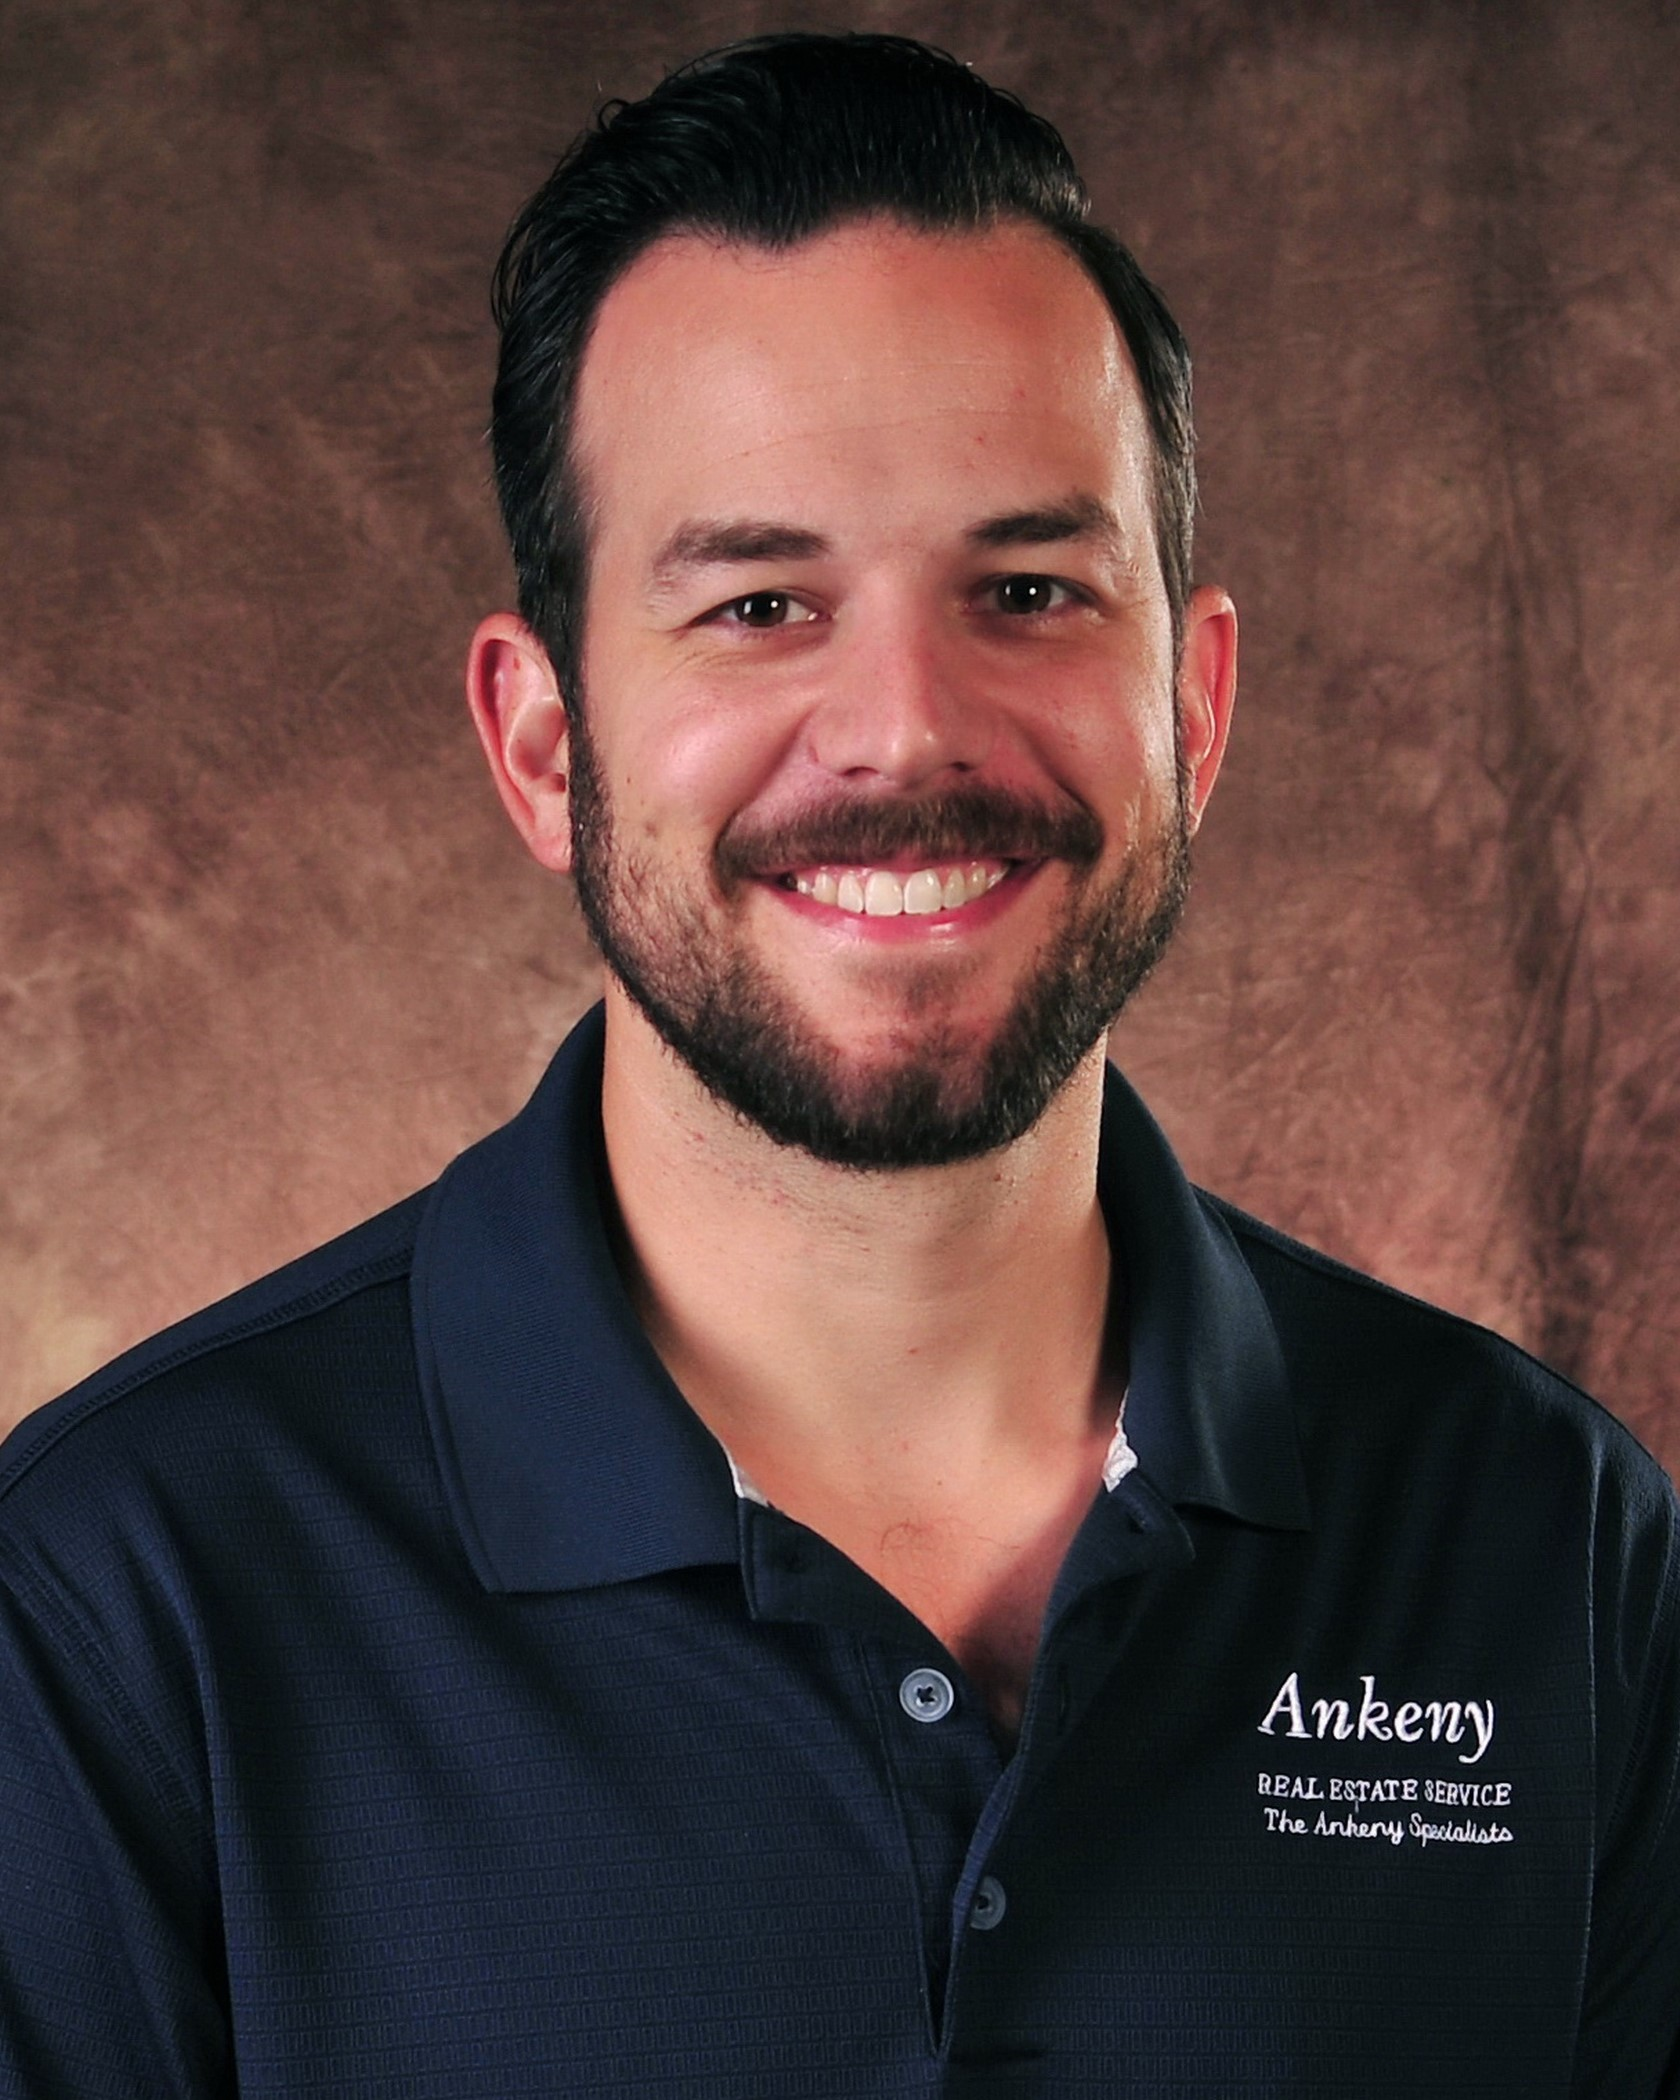 Ankeny Real Estate Service - Michael Hidder